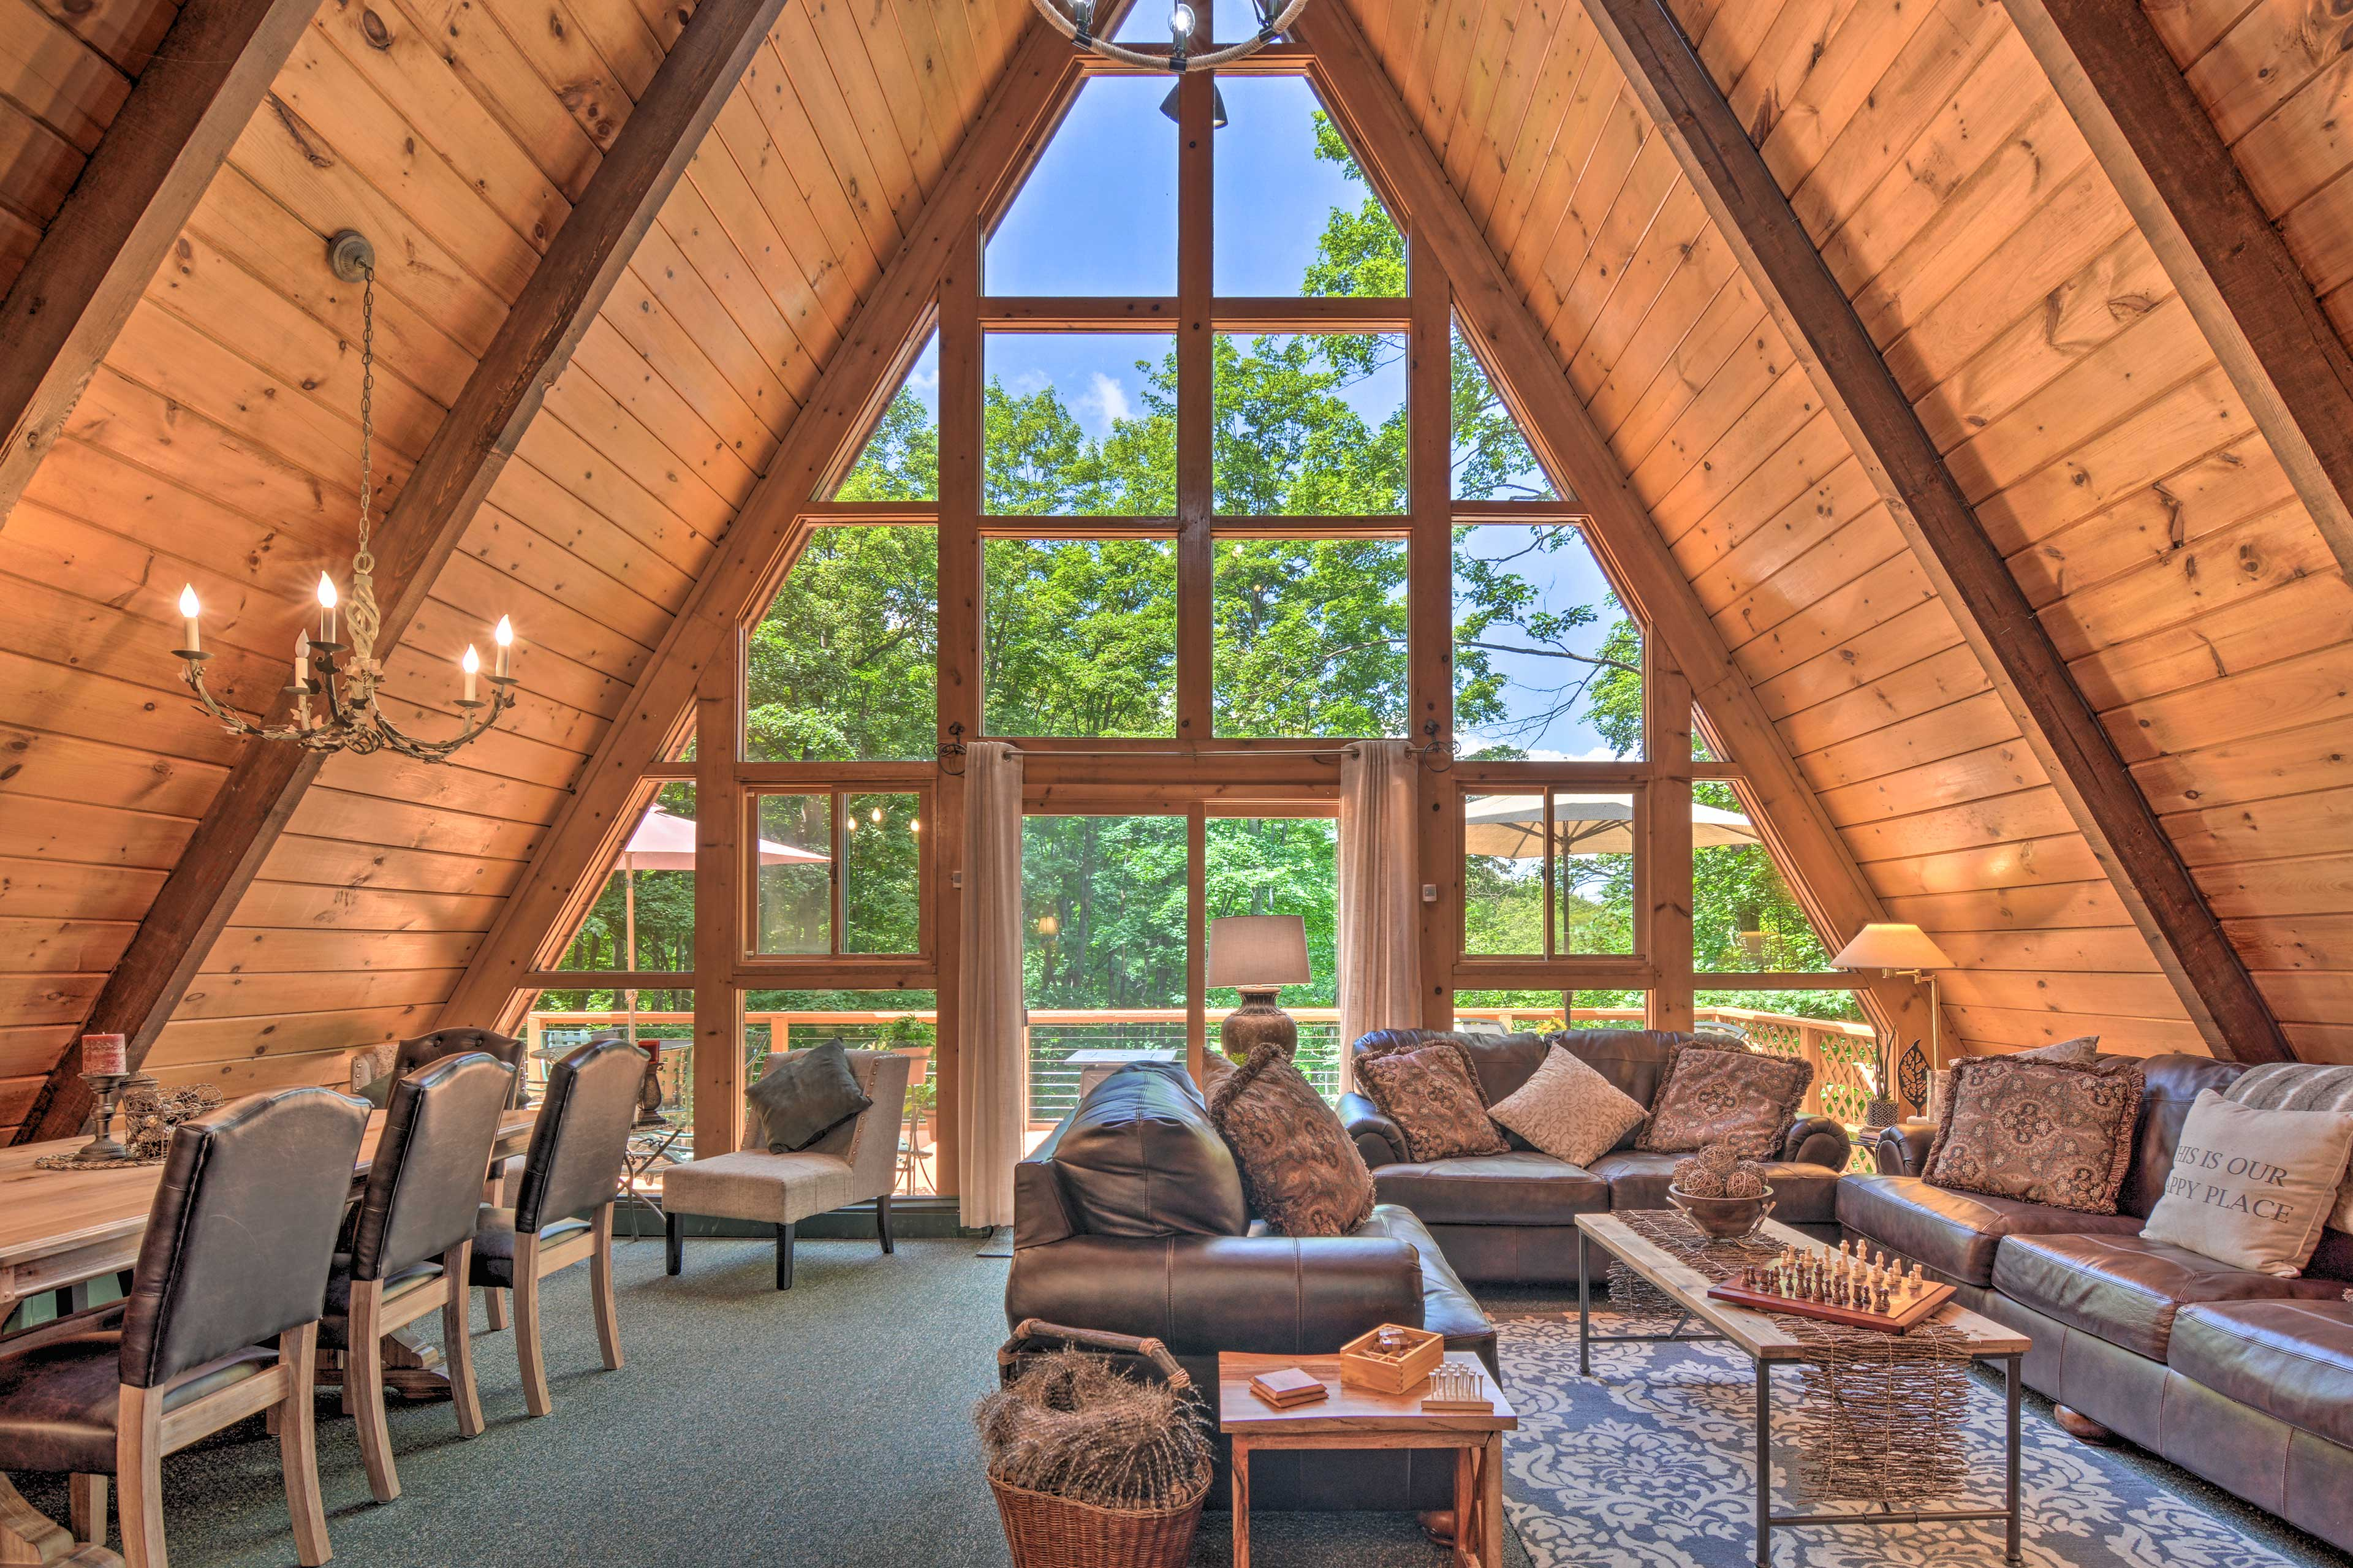 You'll find all the comforts of home inside this cozy getaway.